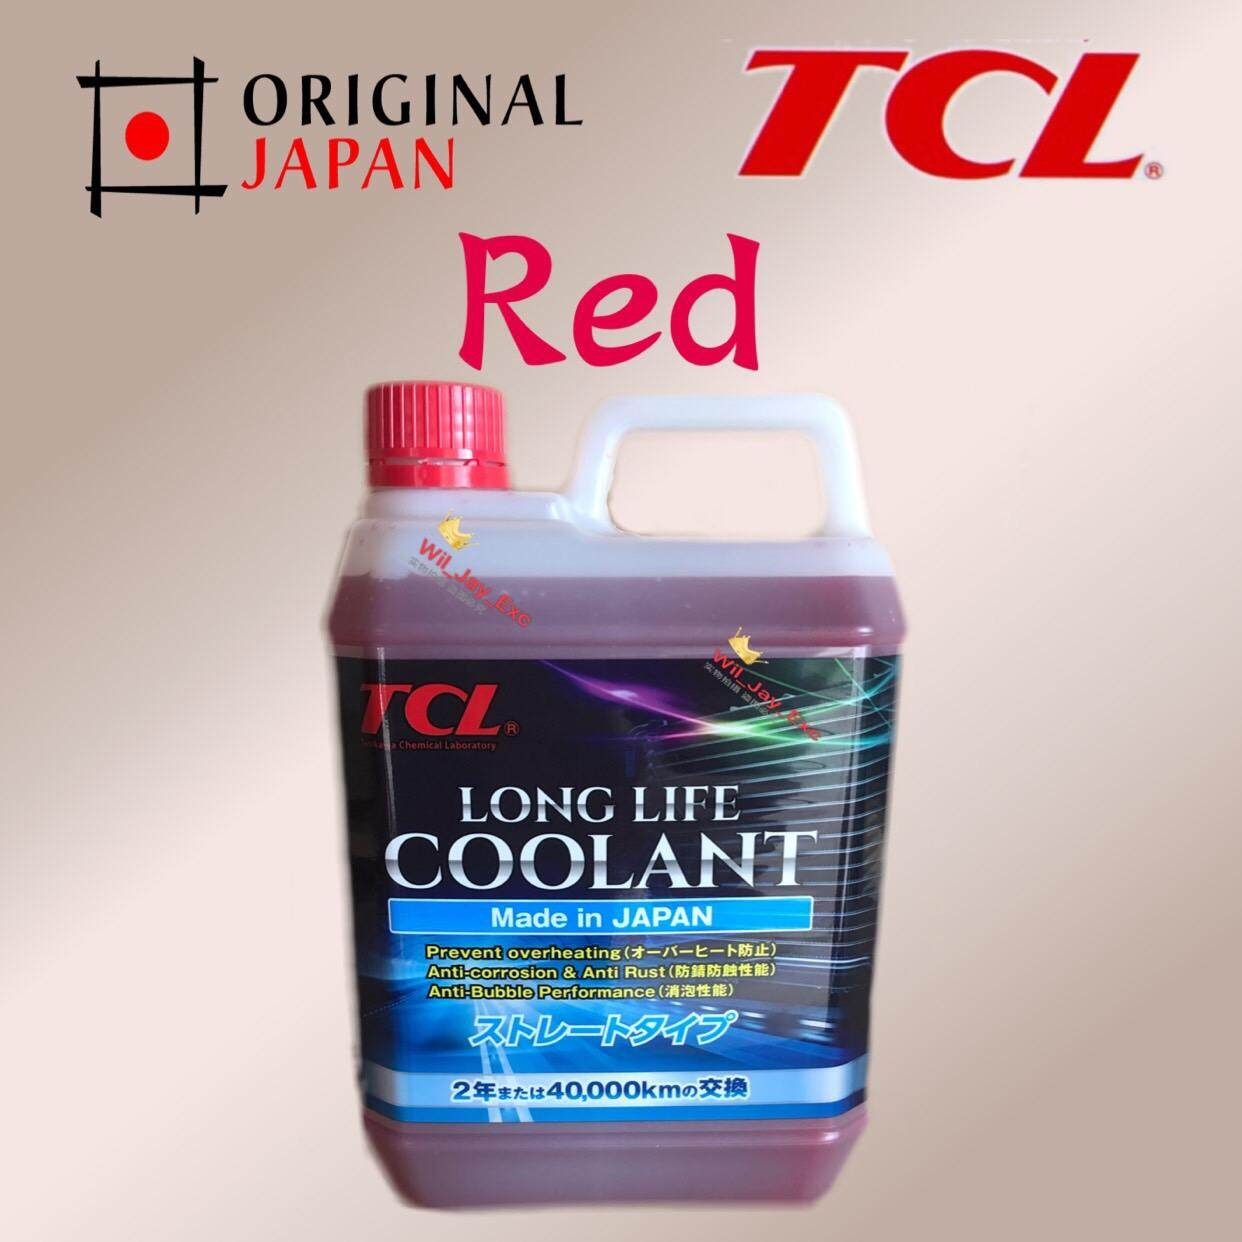 Tcl Long Life Coolant (red) 2 Liter For Car By Wil_jay_3143.